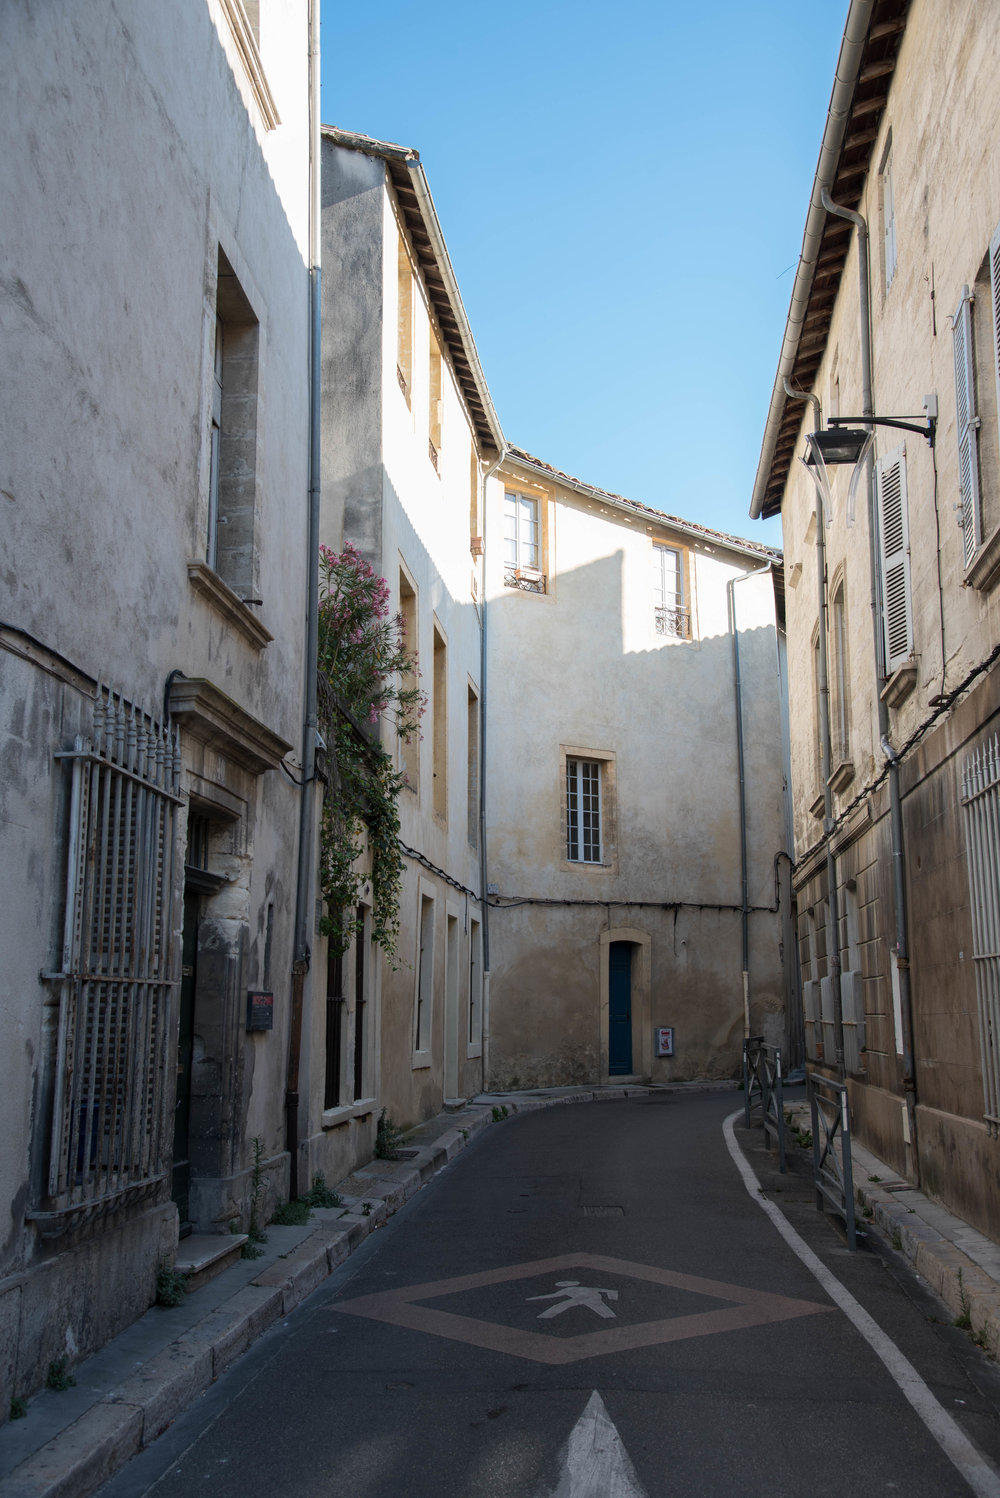 ROSE & IVY Journal R&I Travels Escape to Avignon